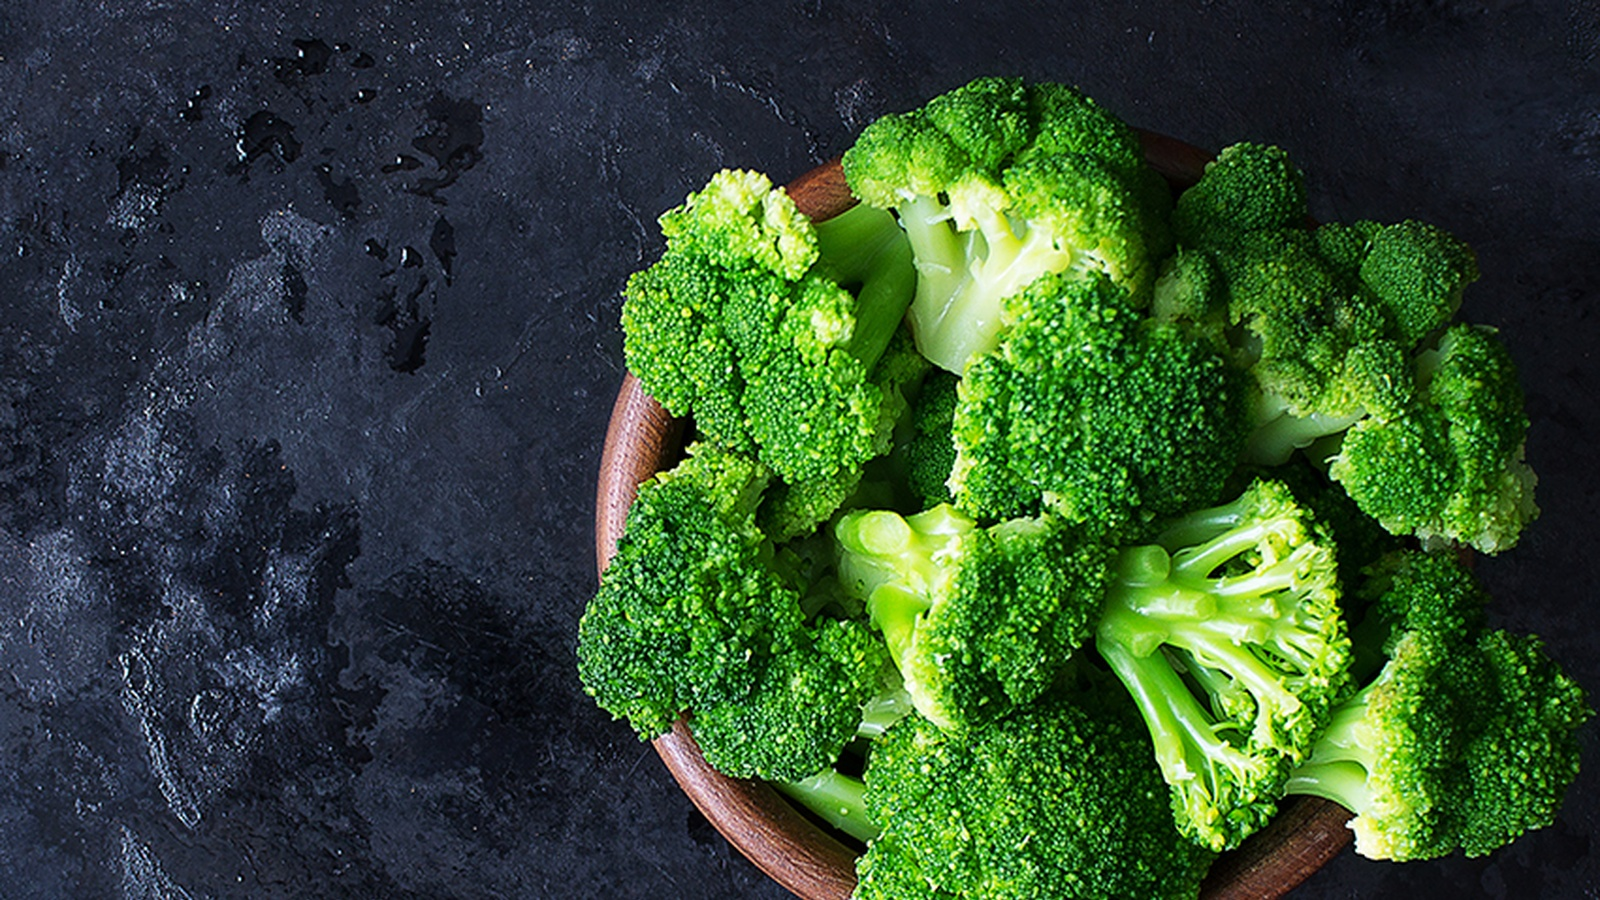 7 Health Benefits of Broccoli (Plus 5 Recipes)